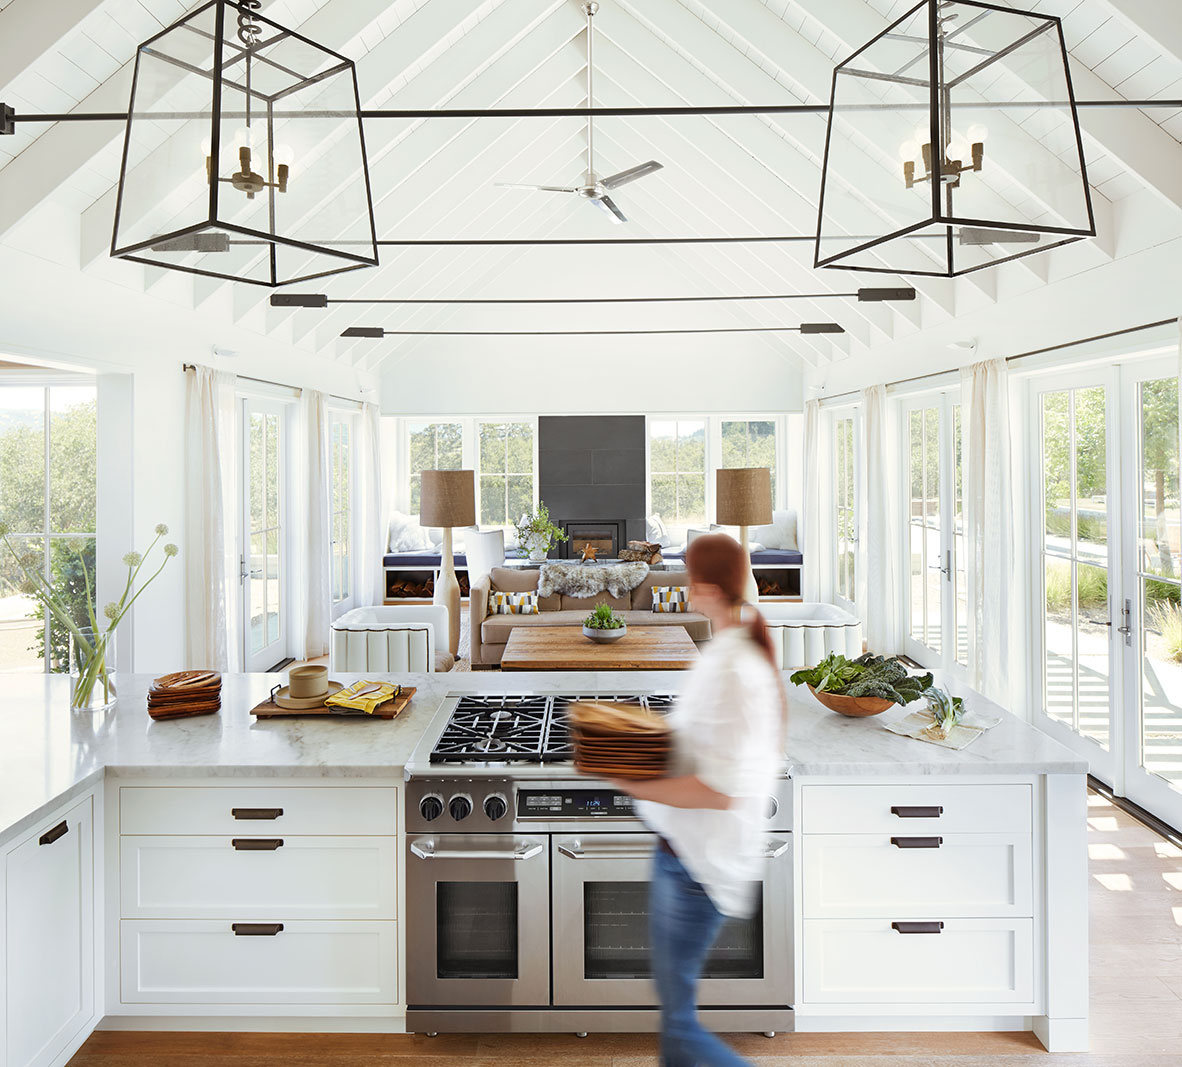 Sonoma farmhouse kitchen interior  | Dovis Bird Agency